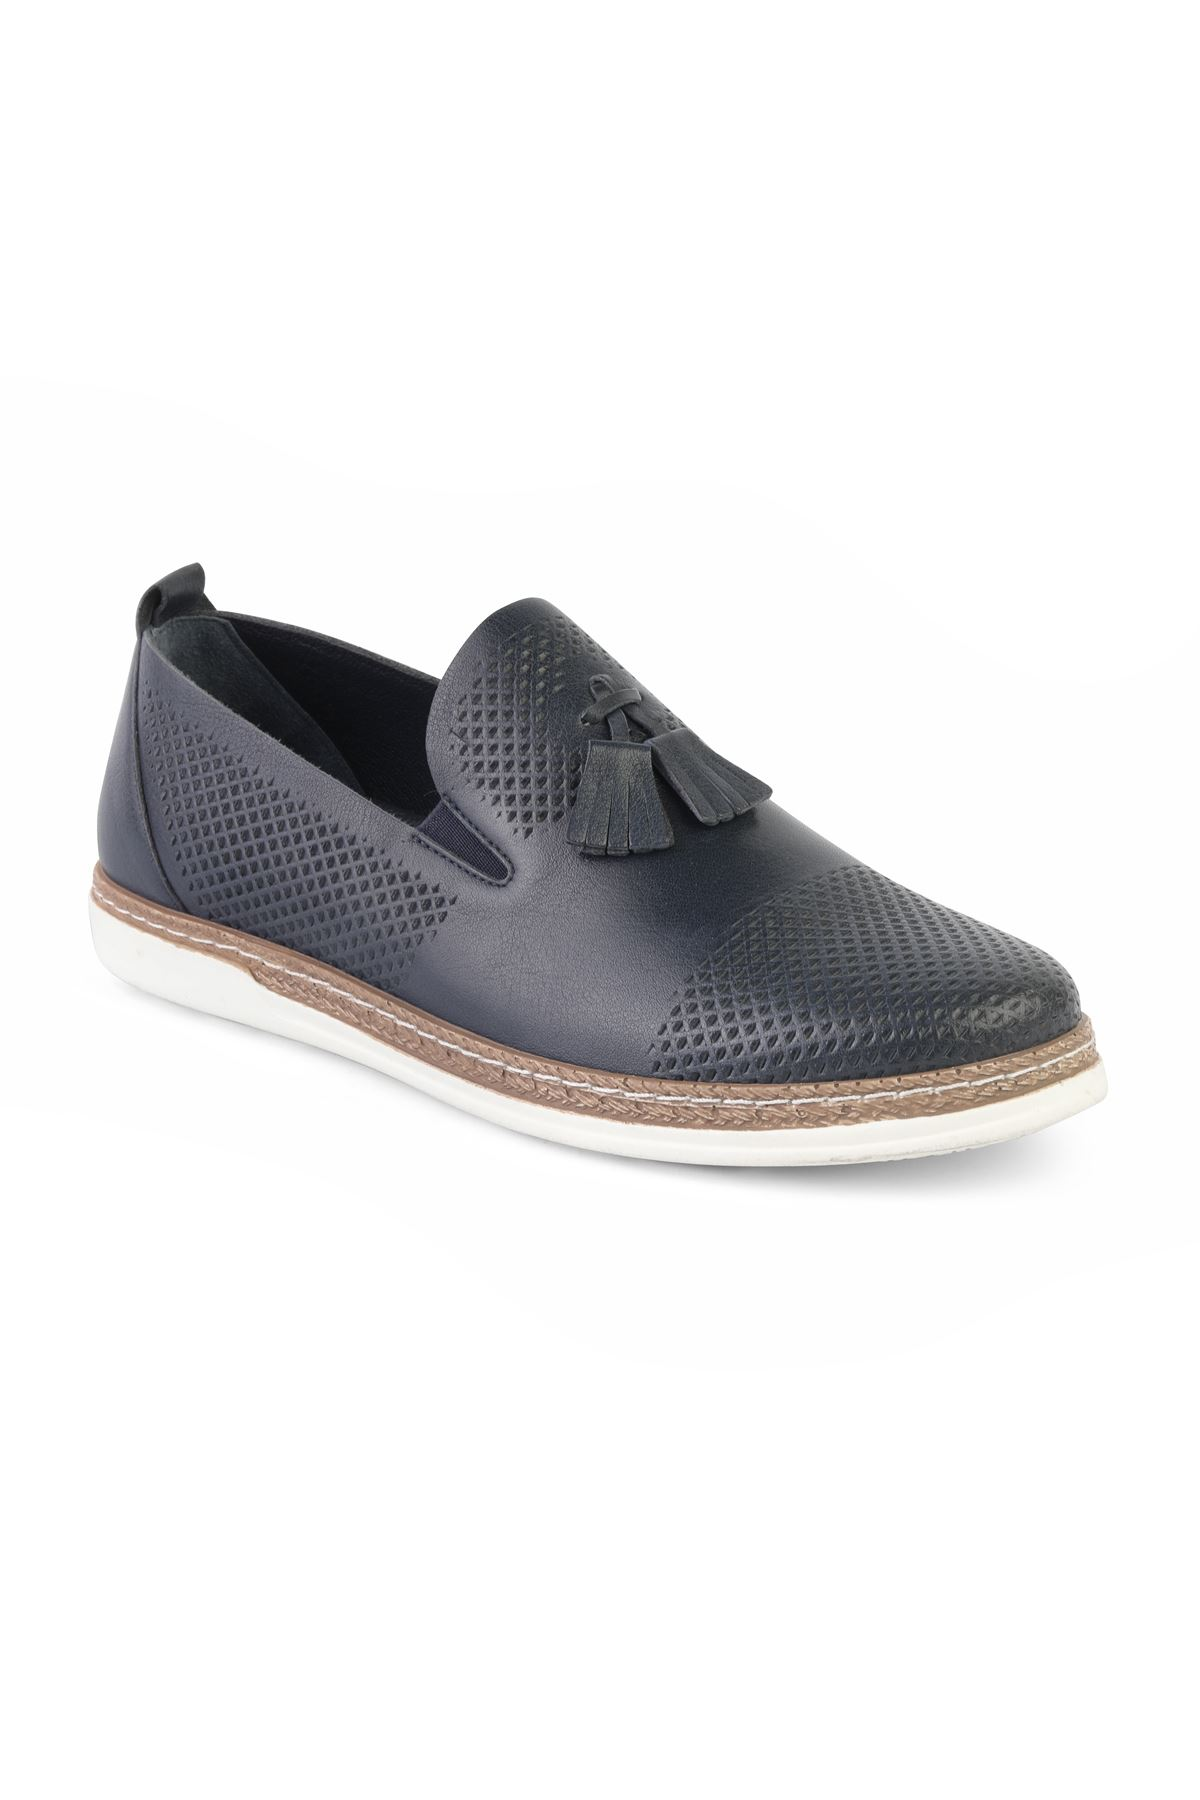 Libero T1167 Black Casual Loafer Shoes